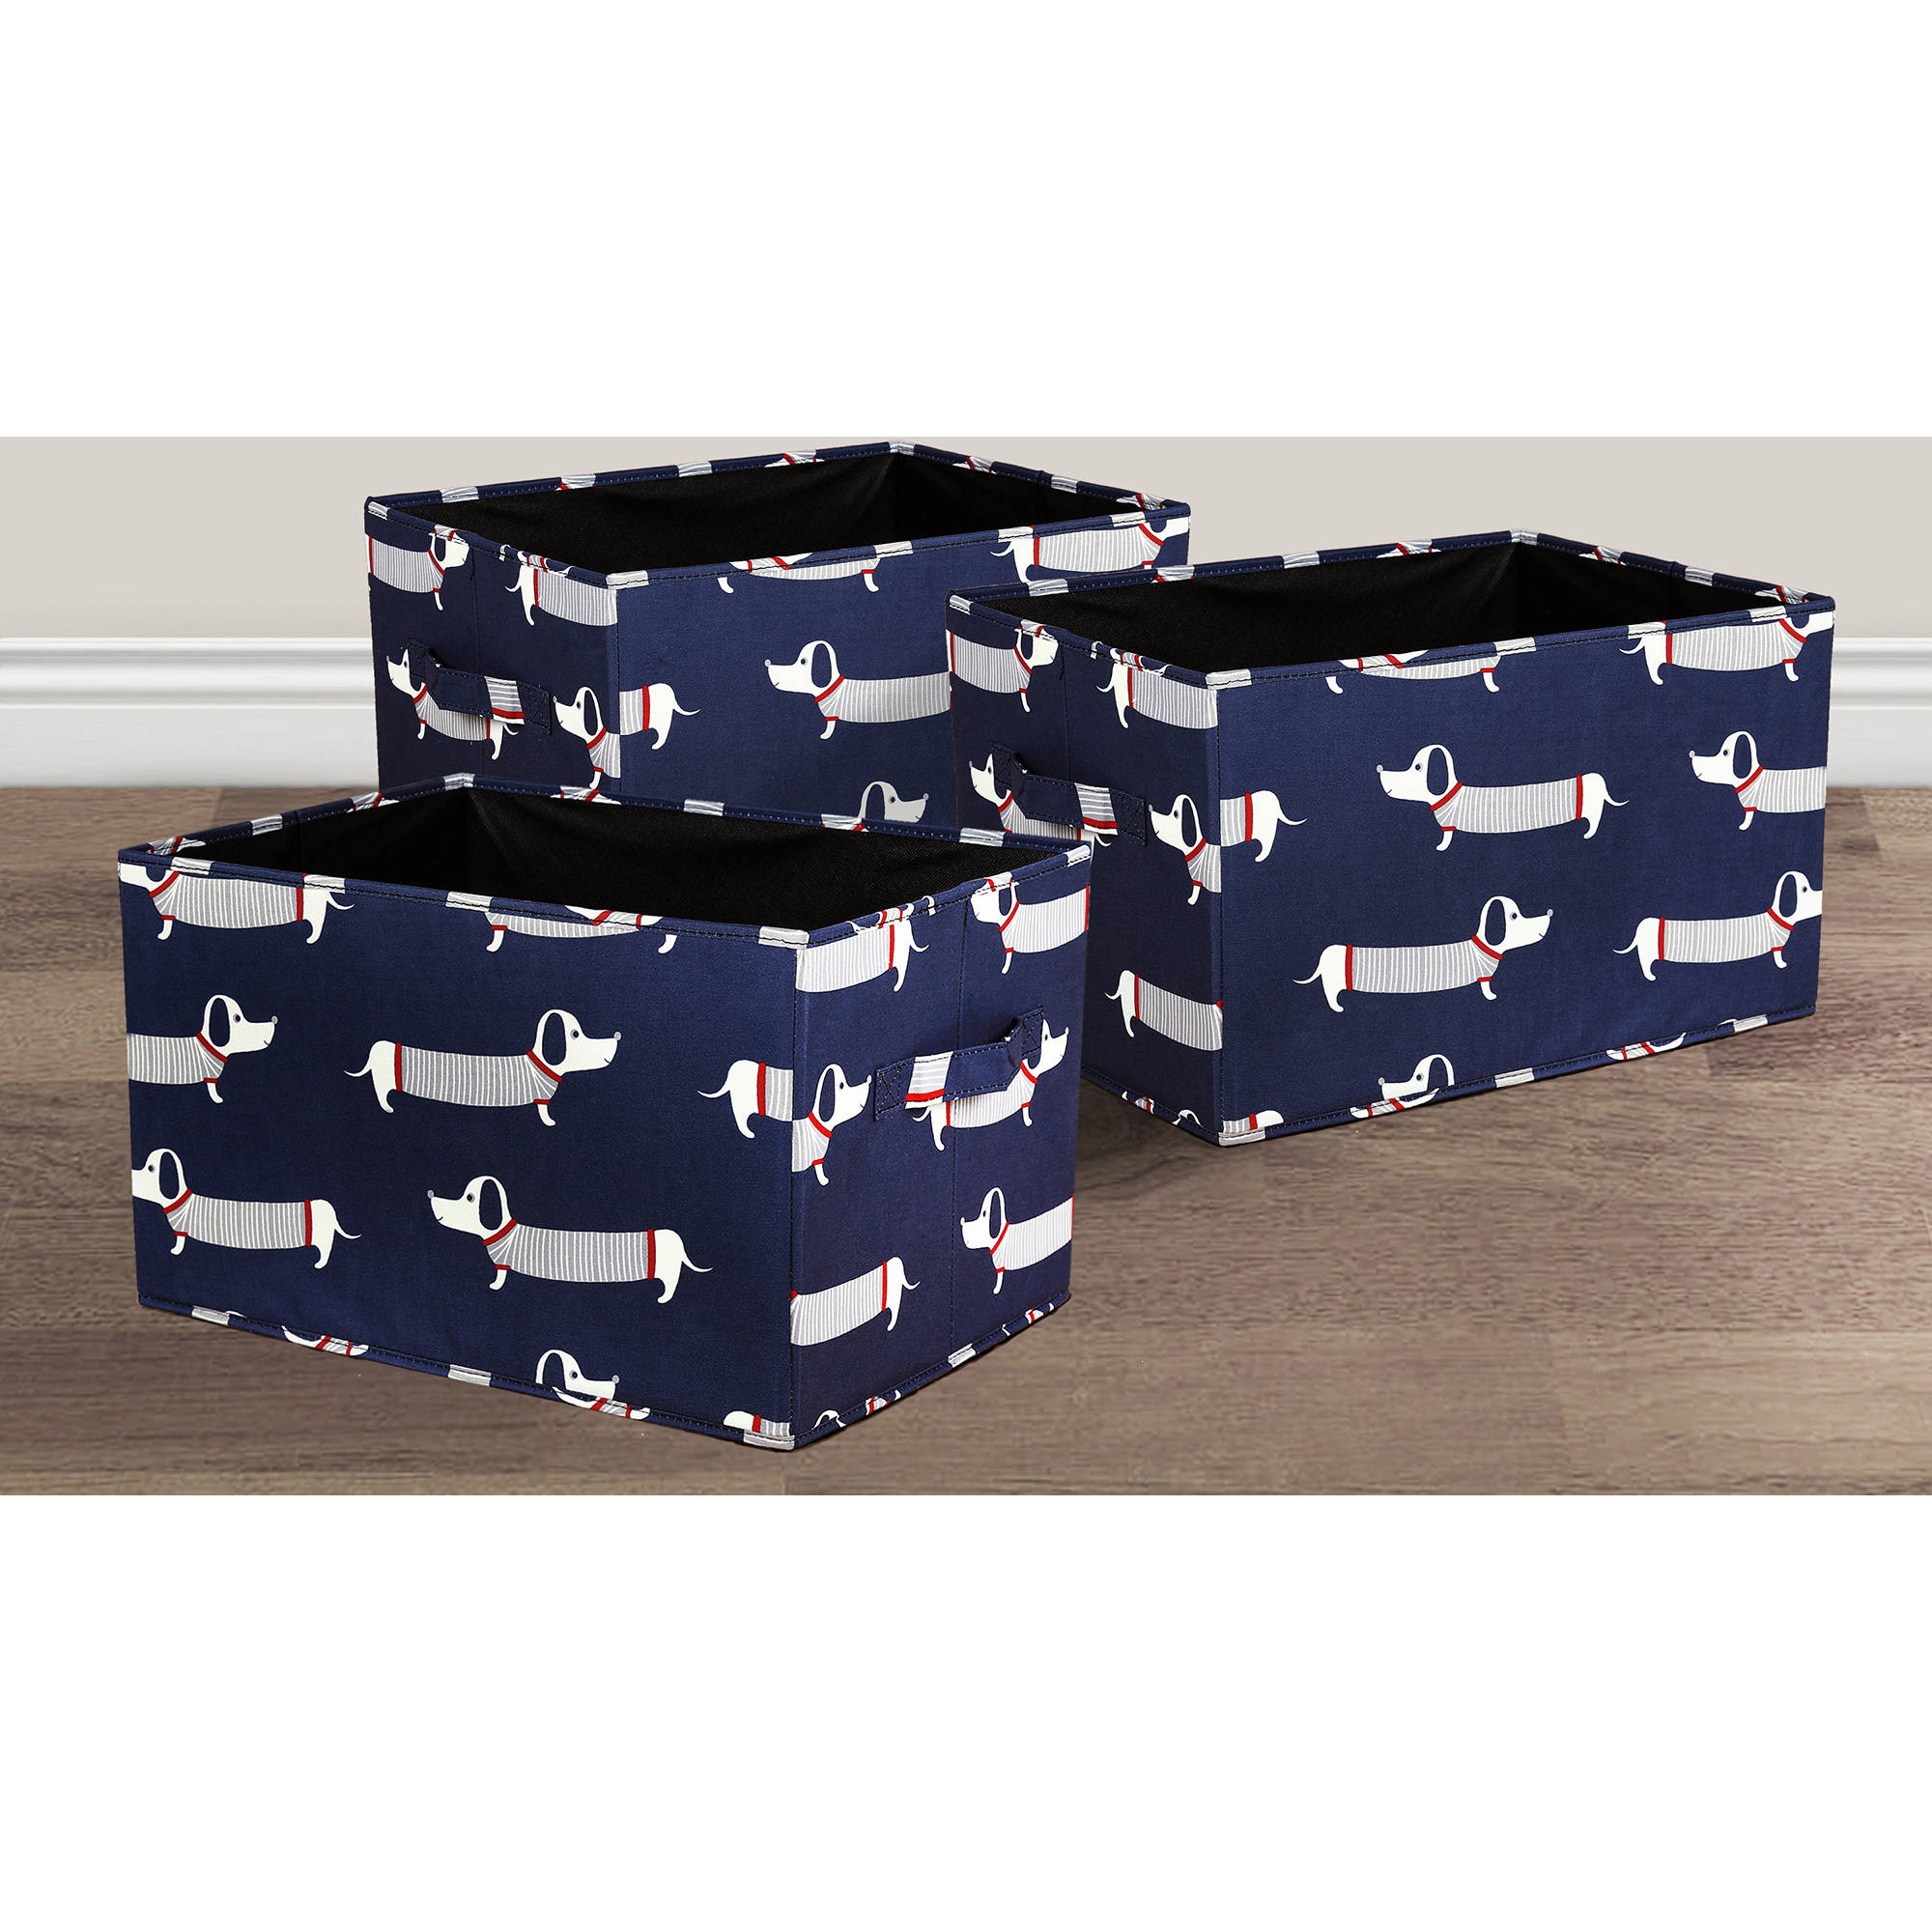 Sausage Dog Fabric Covered Collapsible Box Navy 3Pc Set